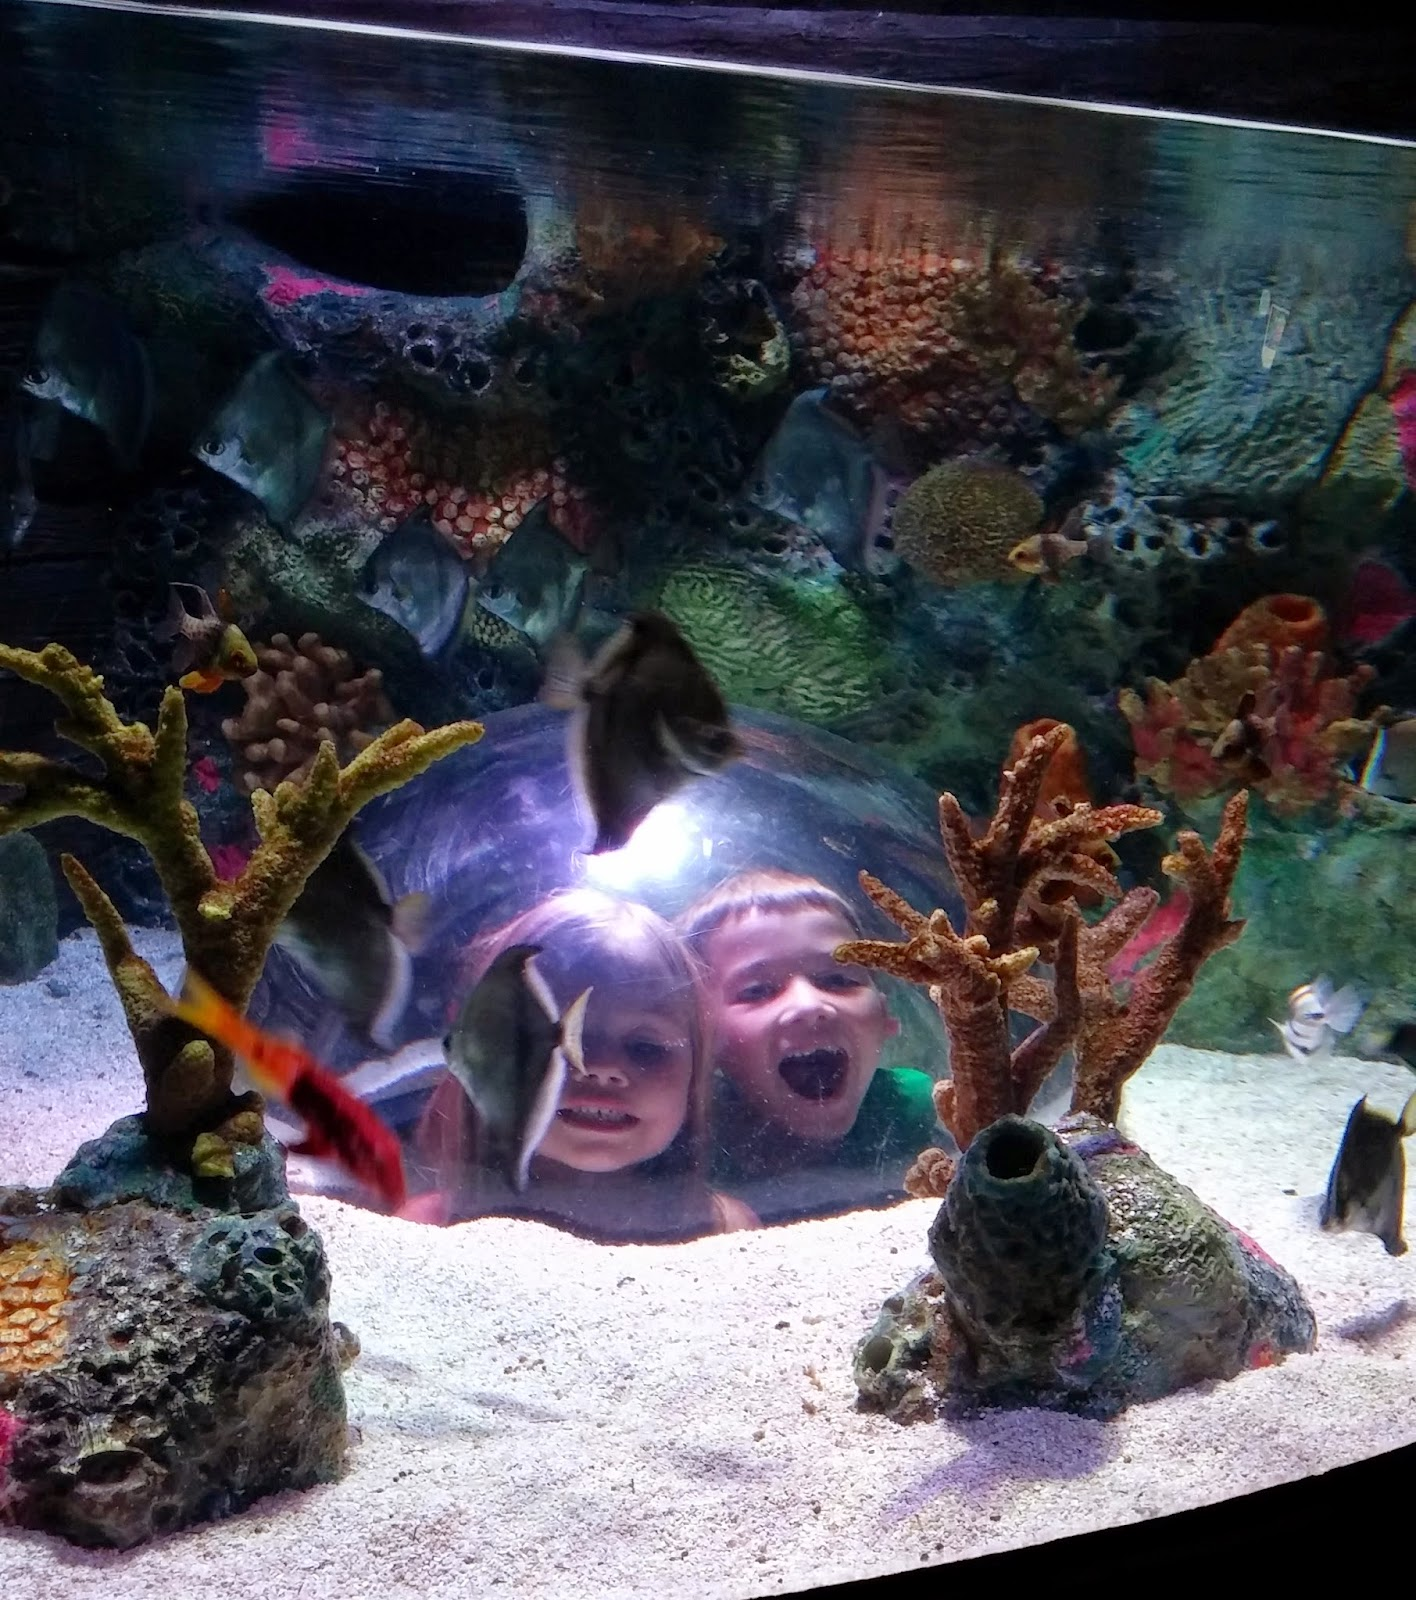 Freshwater fish kansas city - Sea Life Kansas City Aquarium Will Transport You Into The Amazing Underwater World Come Nose To Nose With Sharks And Prepare For Astonishingly Close Views